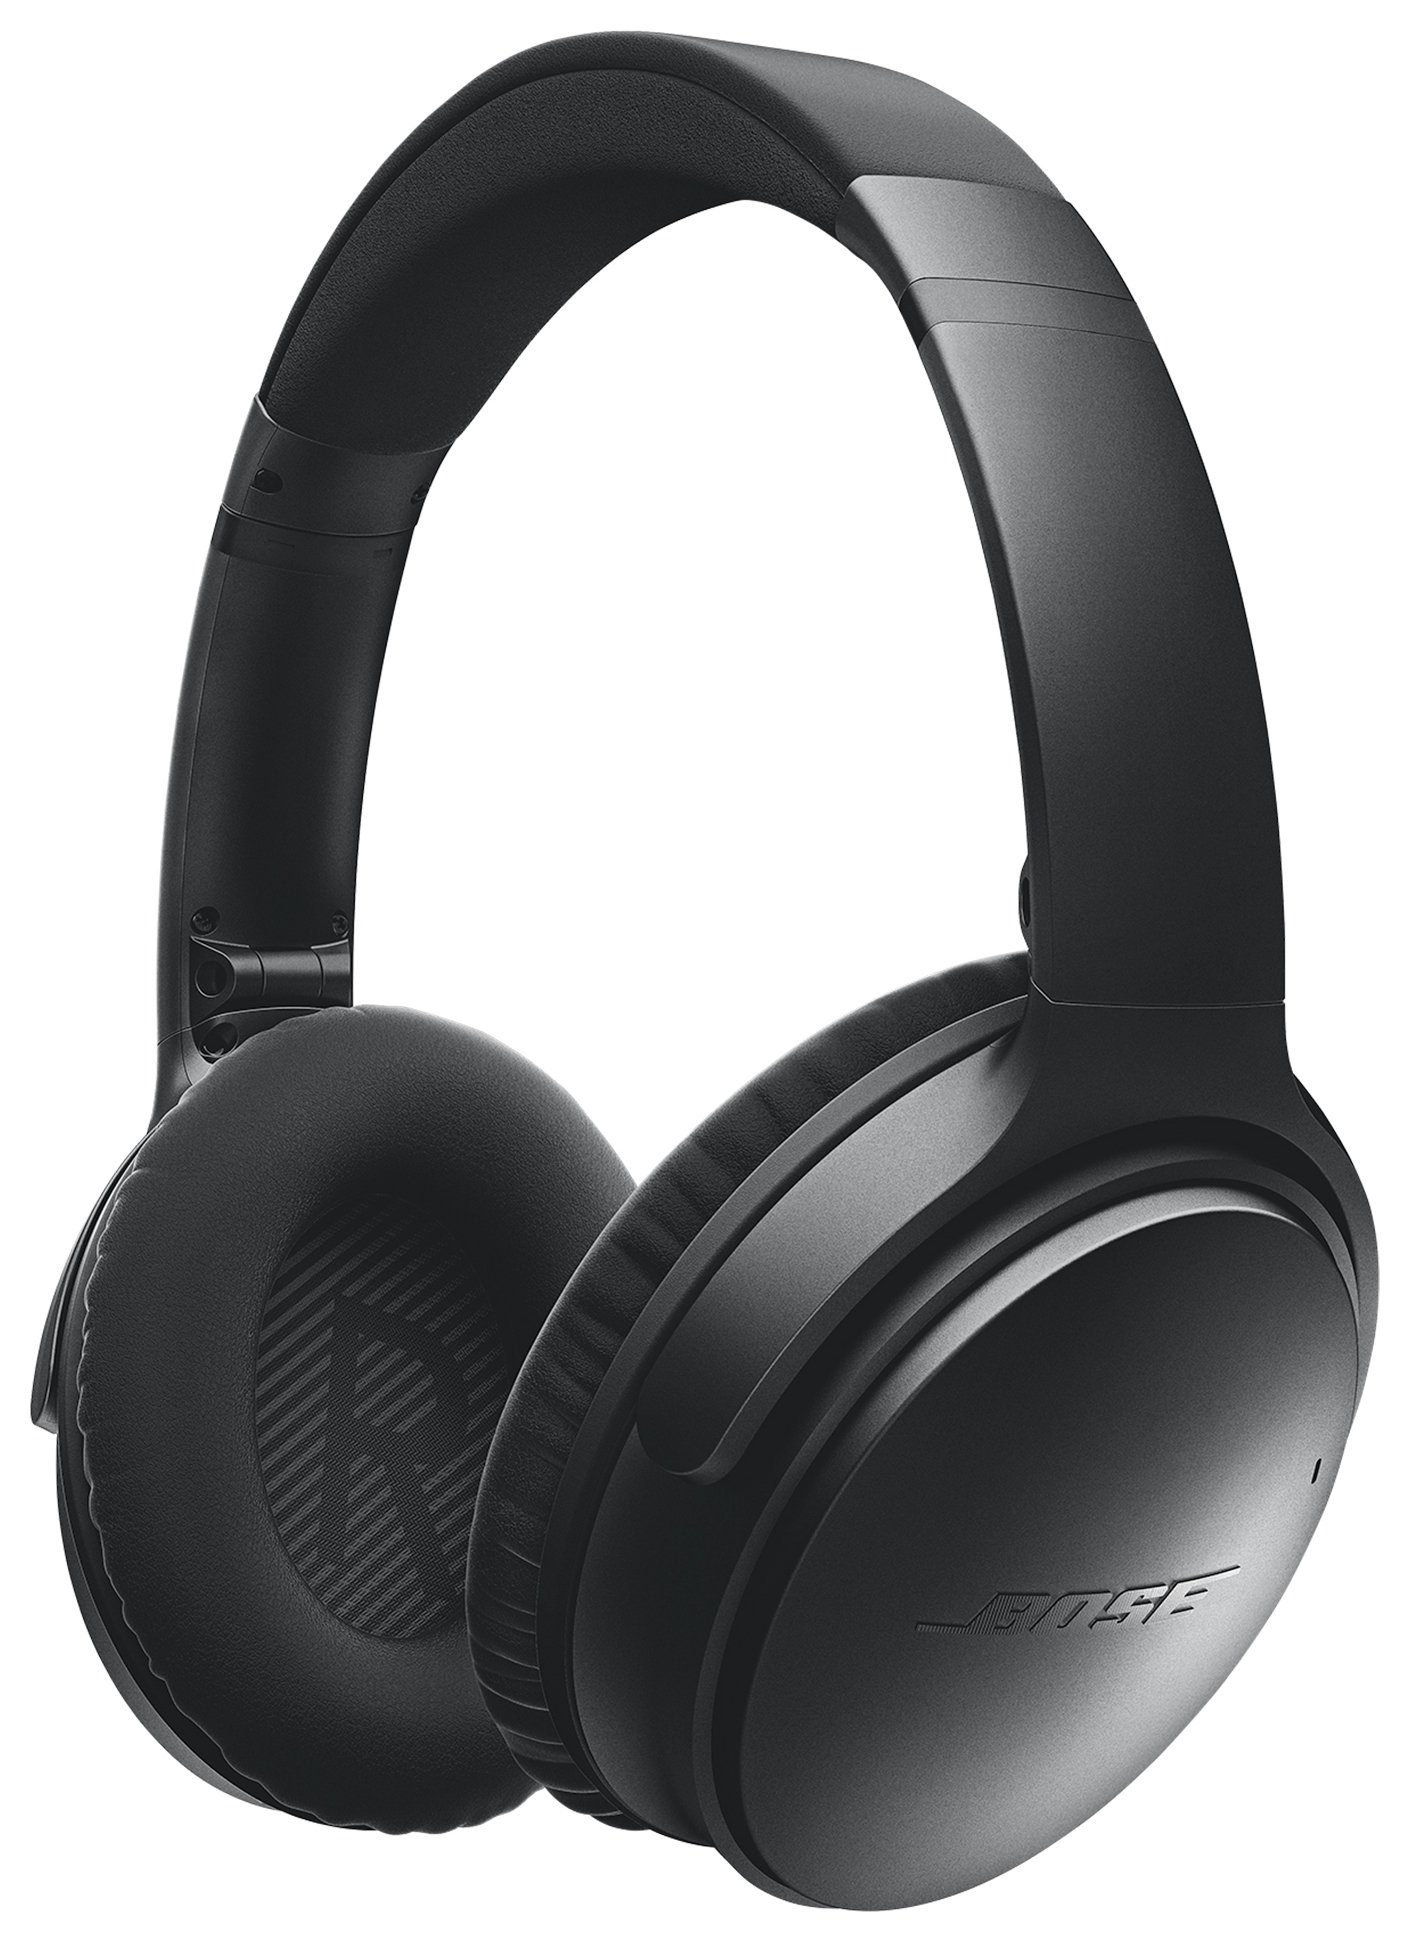 Bose - QuietComfort 35 Wireless Headphones - Black